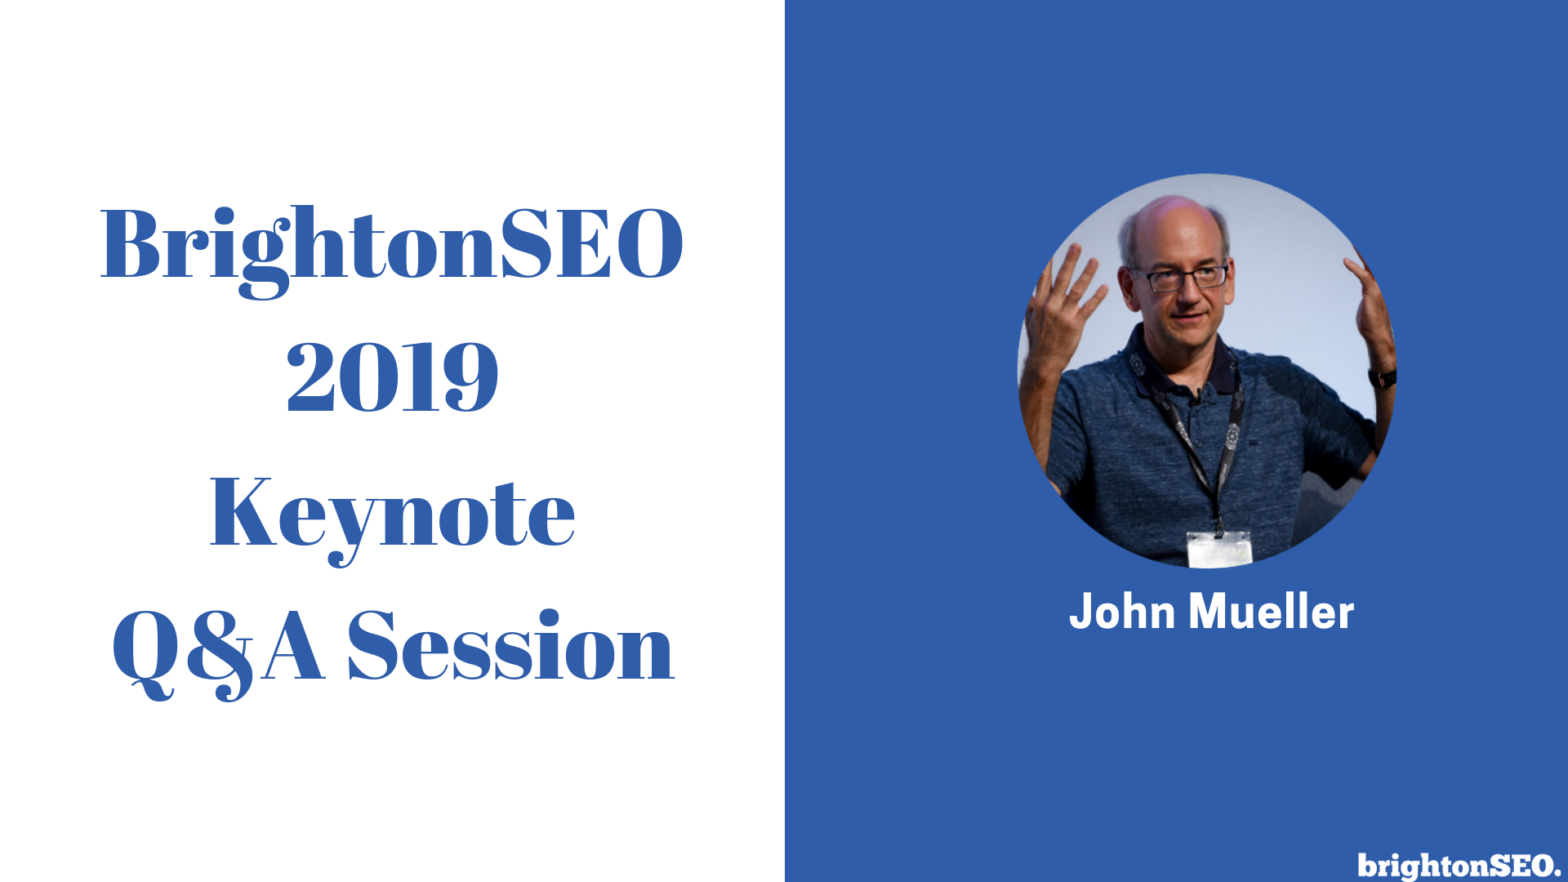 BrightonSEO 2019 Keynote Q&A Session with John Mueller